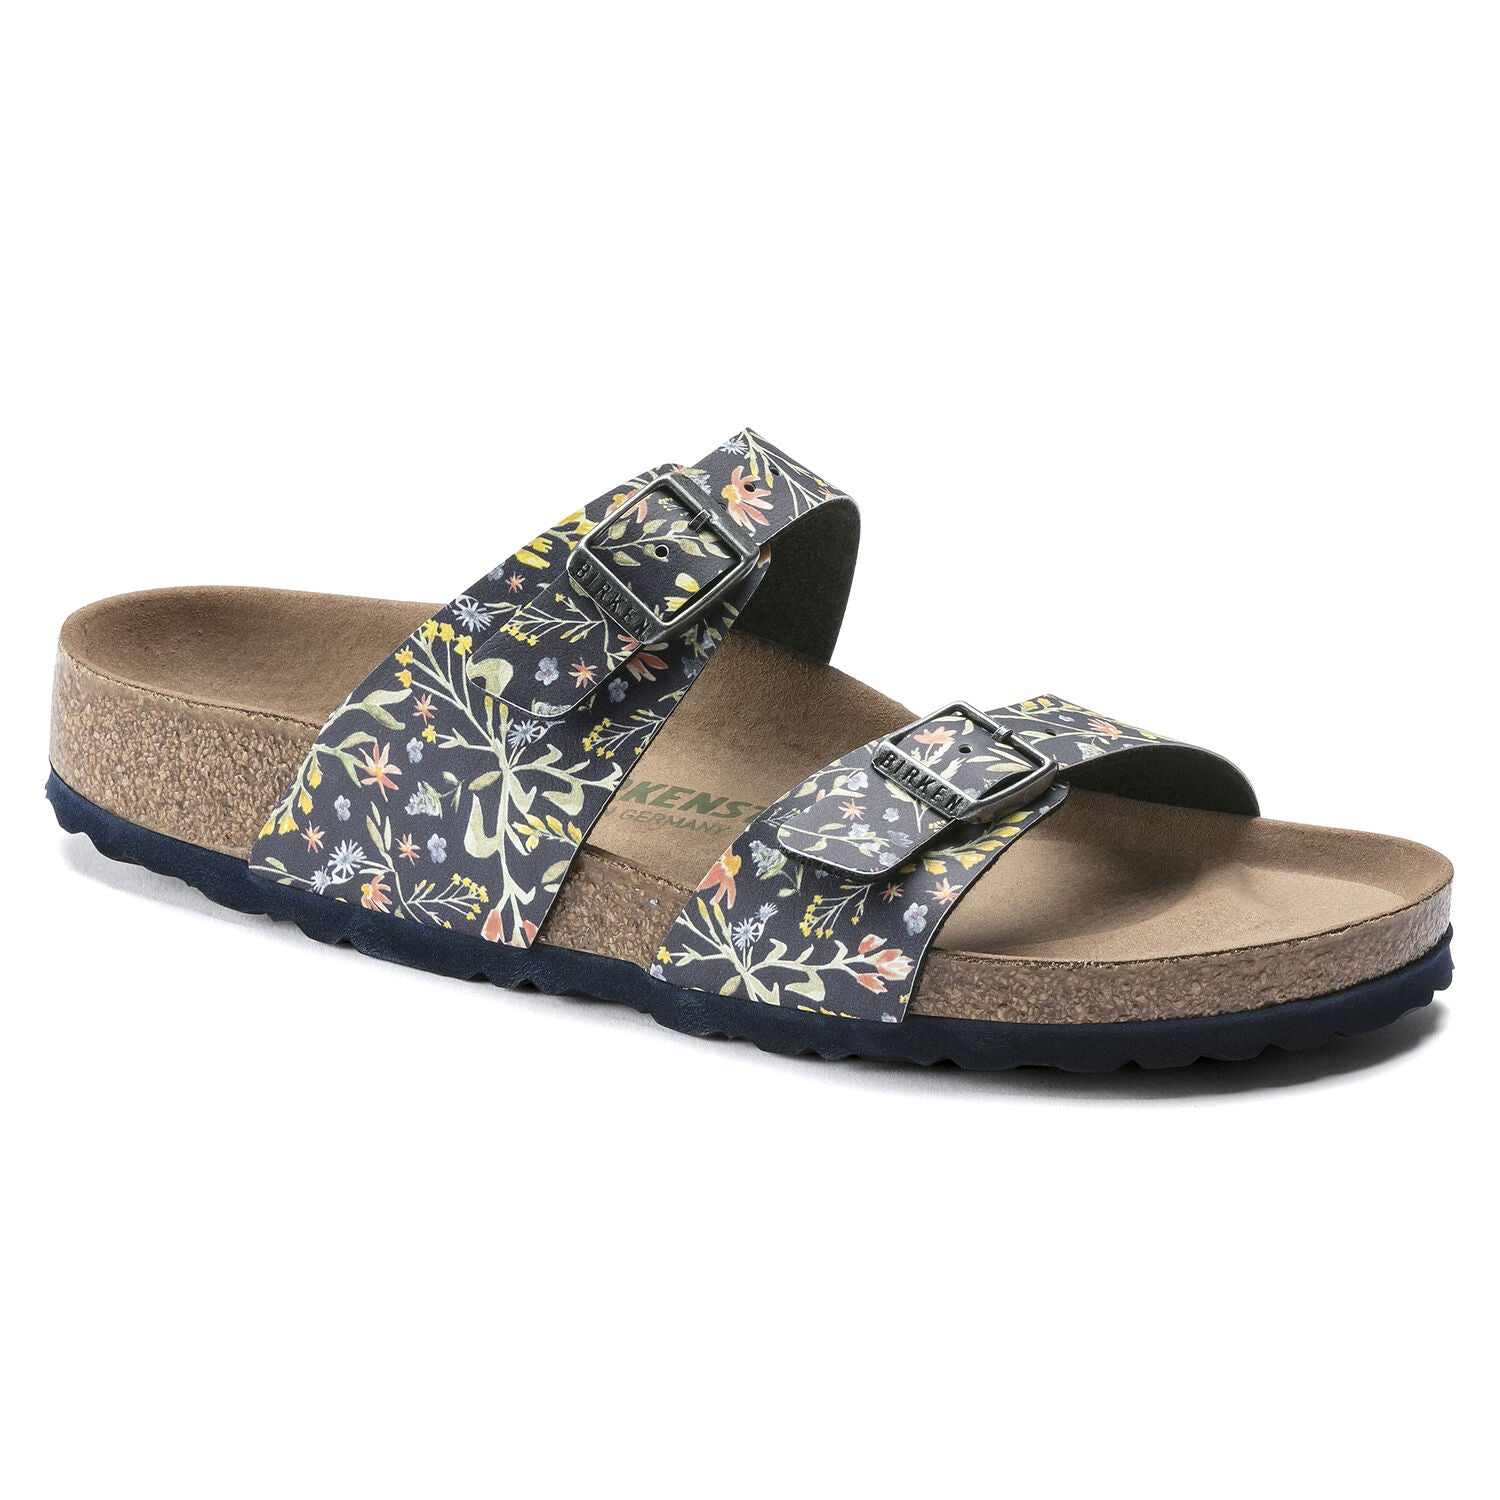 Sydney Vegan - Watercolor Flower Navy Birko-Flor